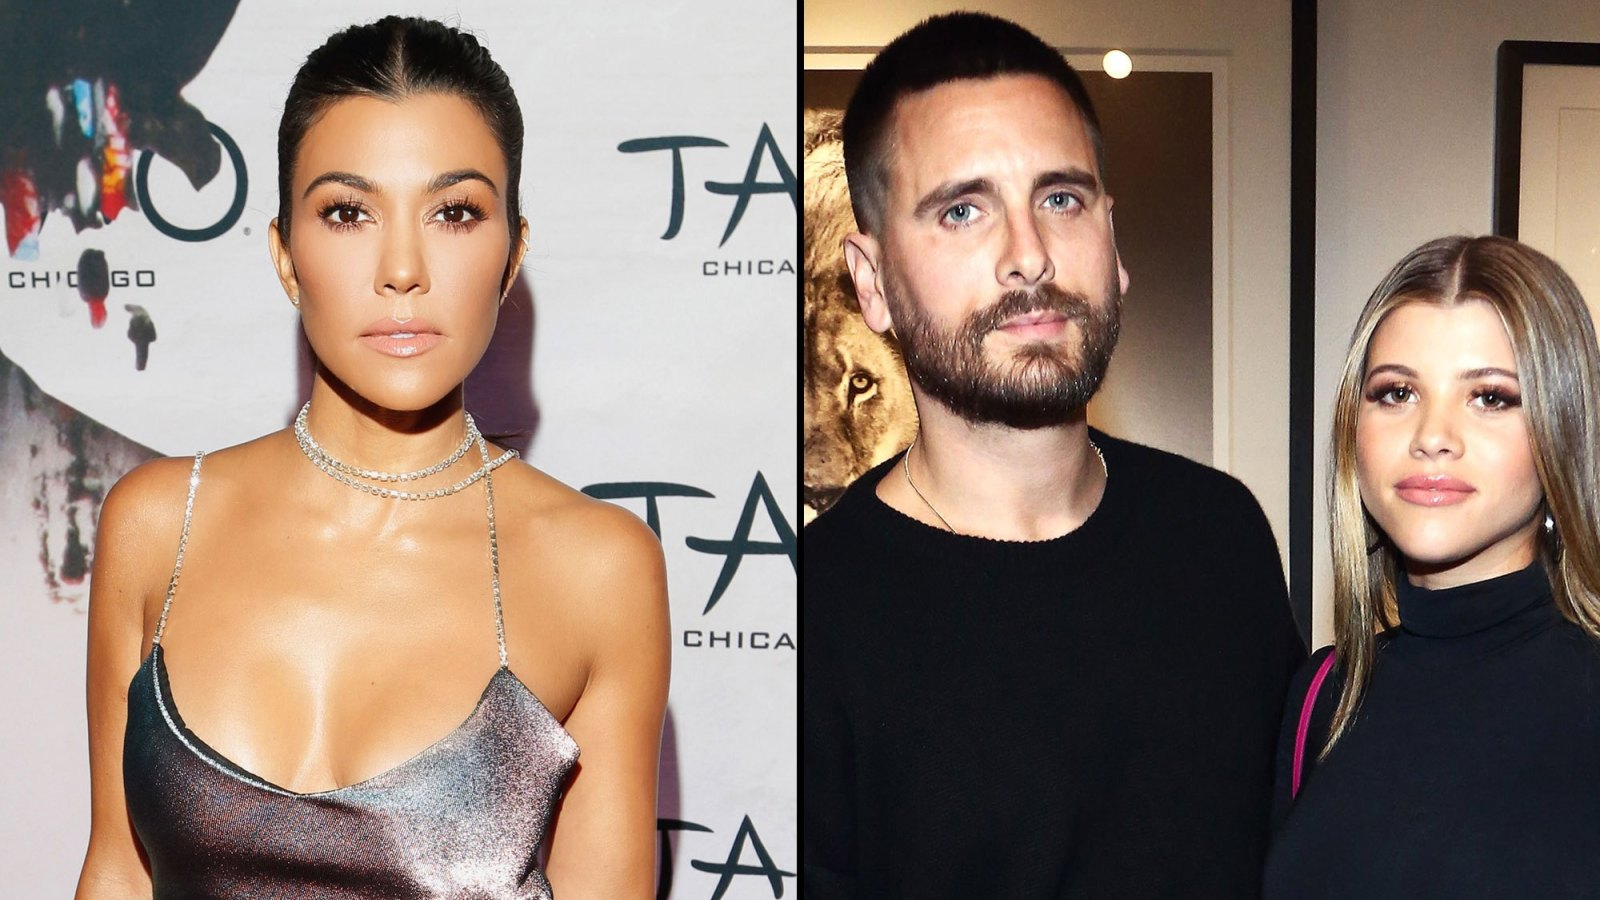 Kourtney Kardashian Celebrates Her Birthday With Scott Disick, Sofia Richie And The Kids In Finland